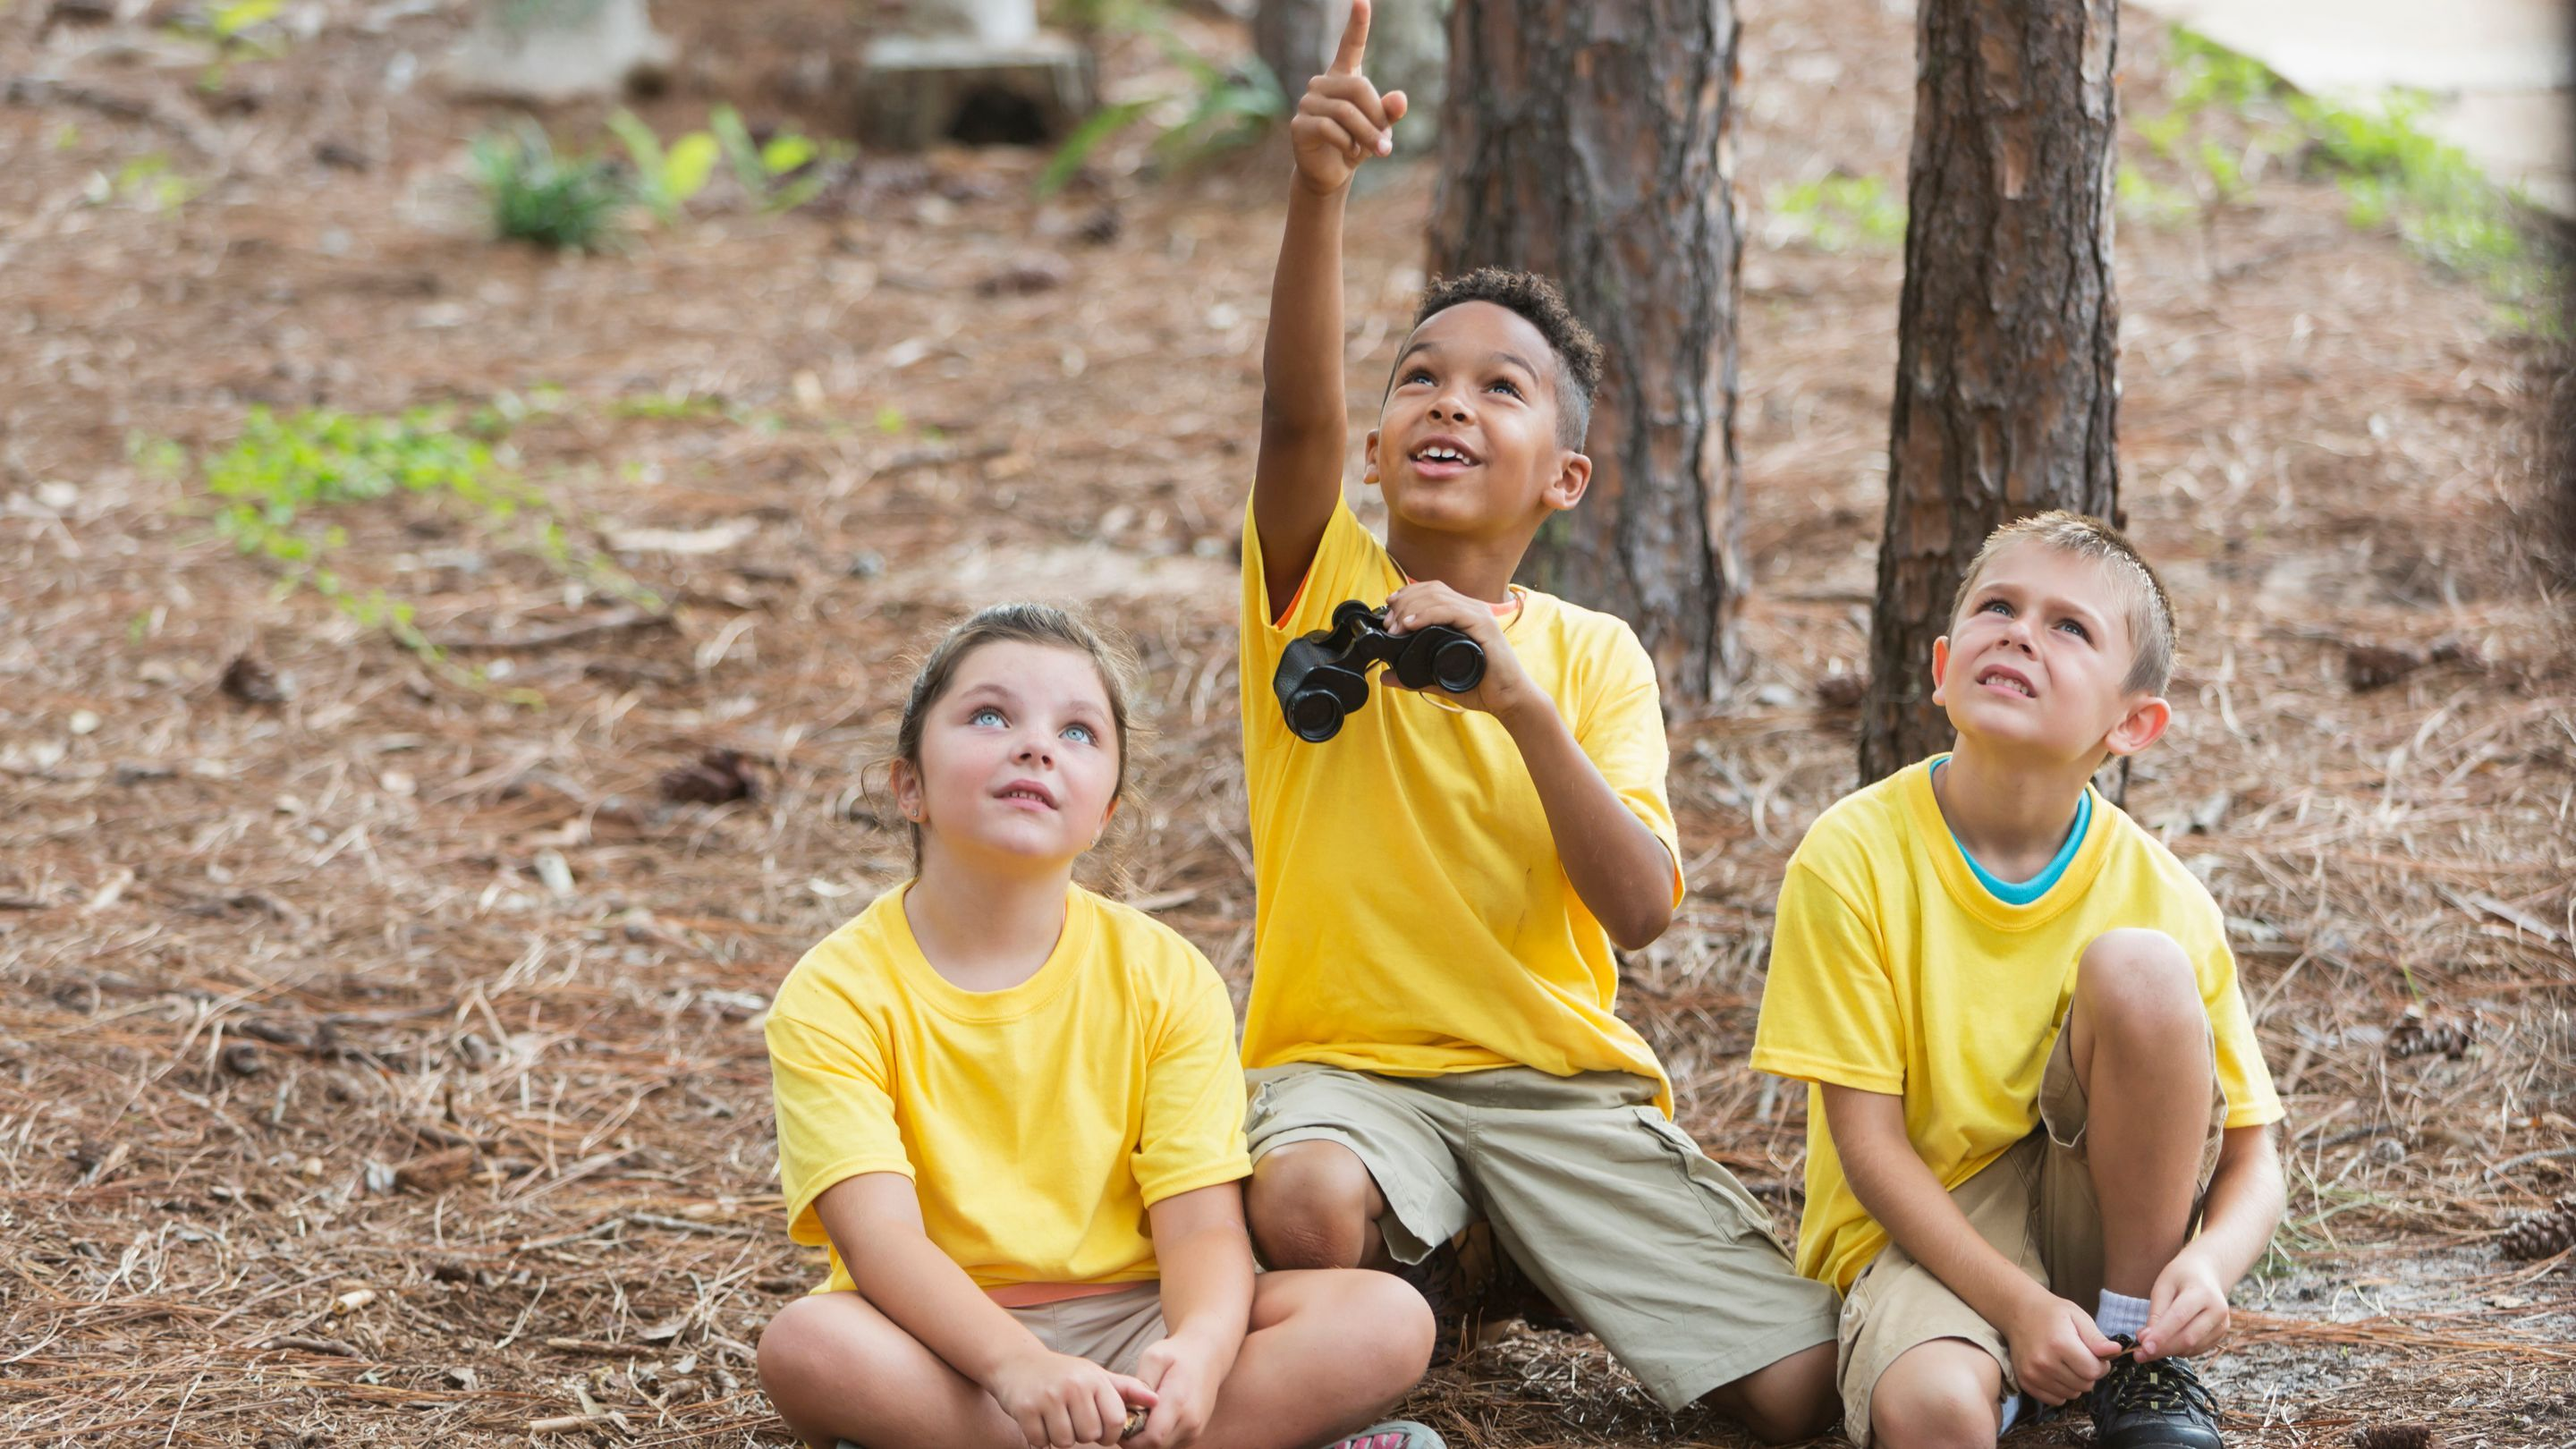 Getting Kids Outdoors With Technology